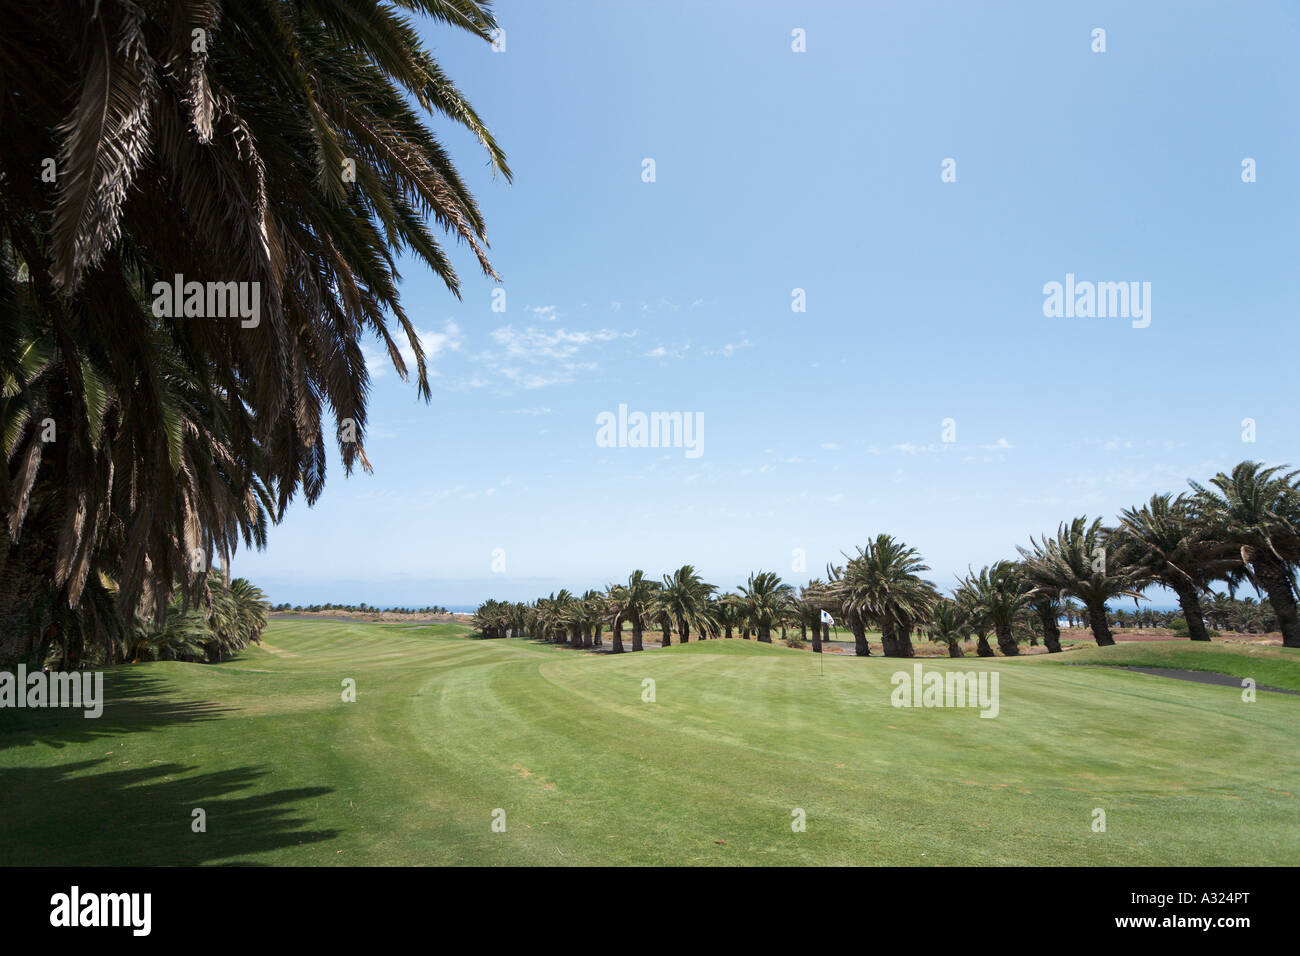 Ninth Green of the Golf Club at Costa Teguise, Lanzarote, Canary Islands, Spain - Stock Image